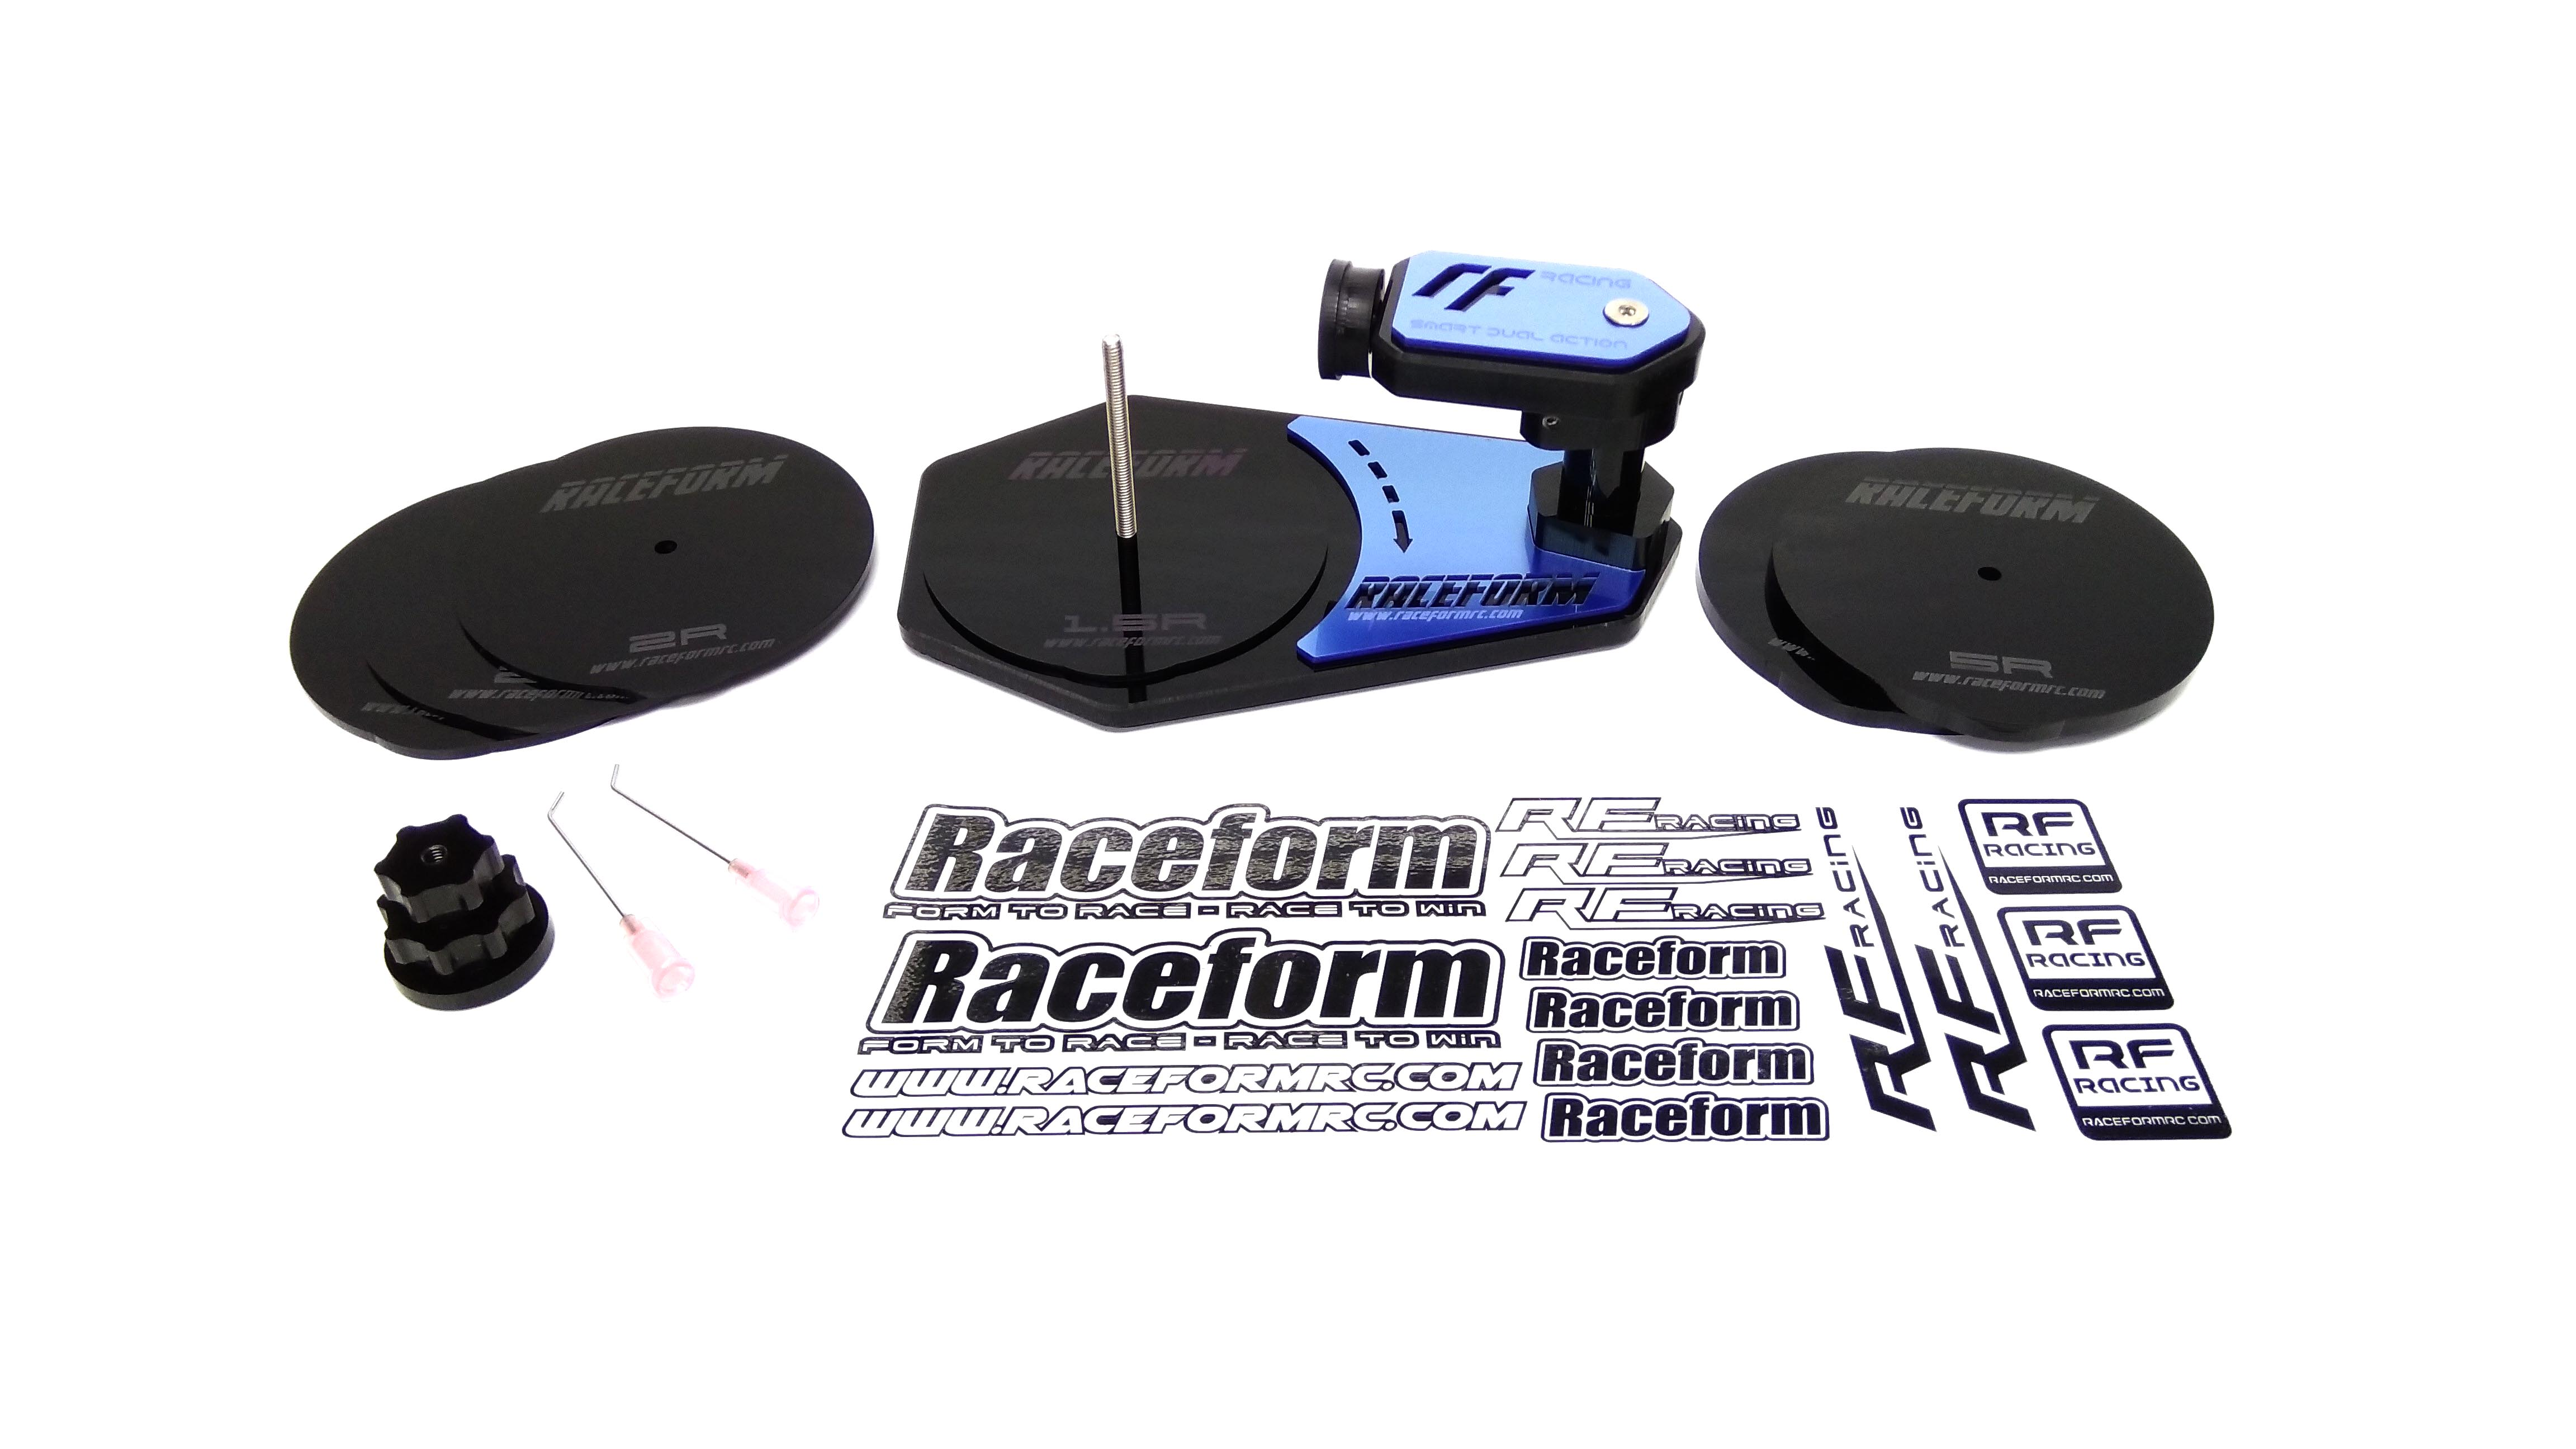 Raceform Lazer 1/10th Scale Buggy Tire Gluing Jig